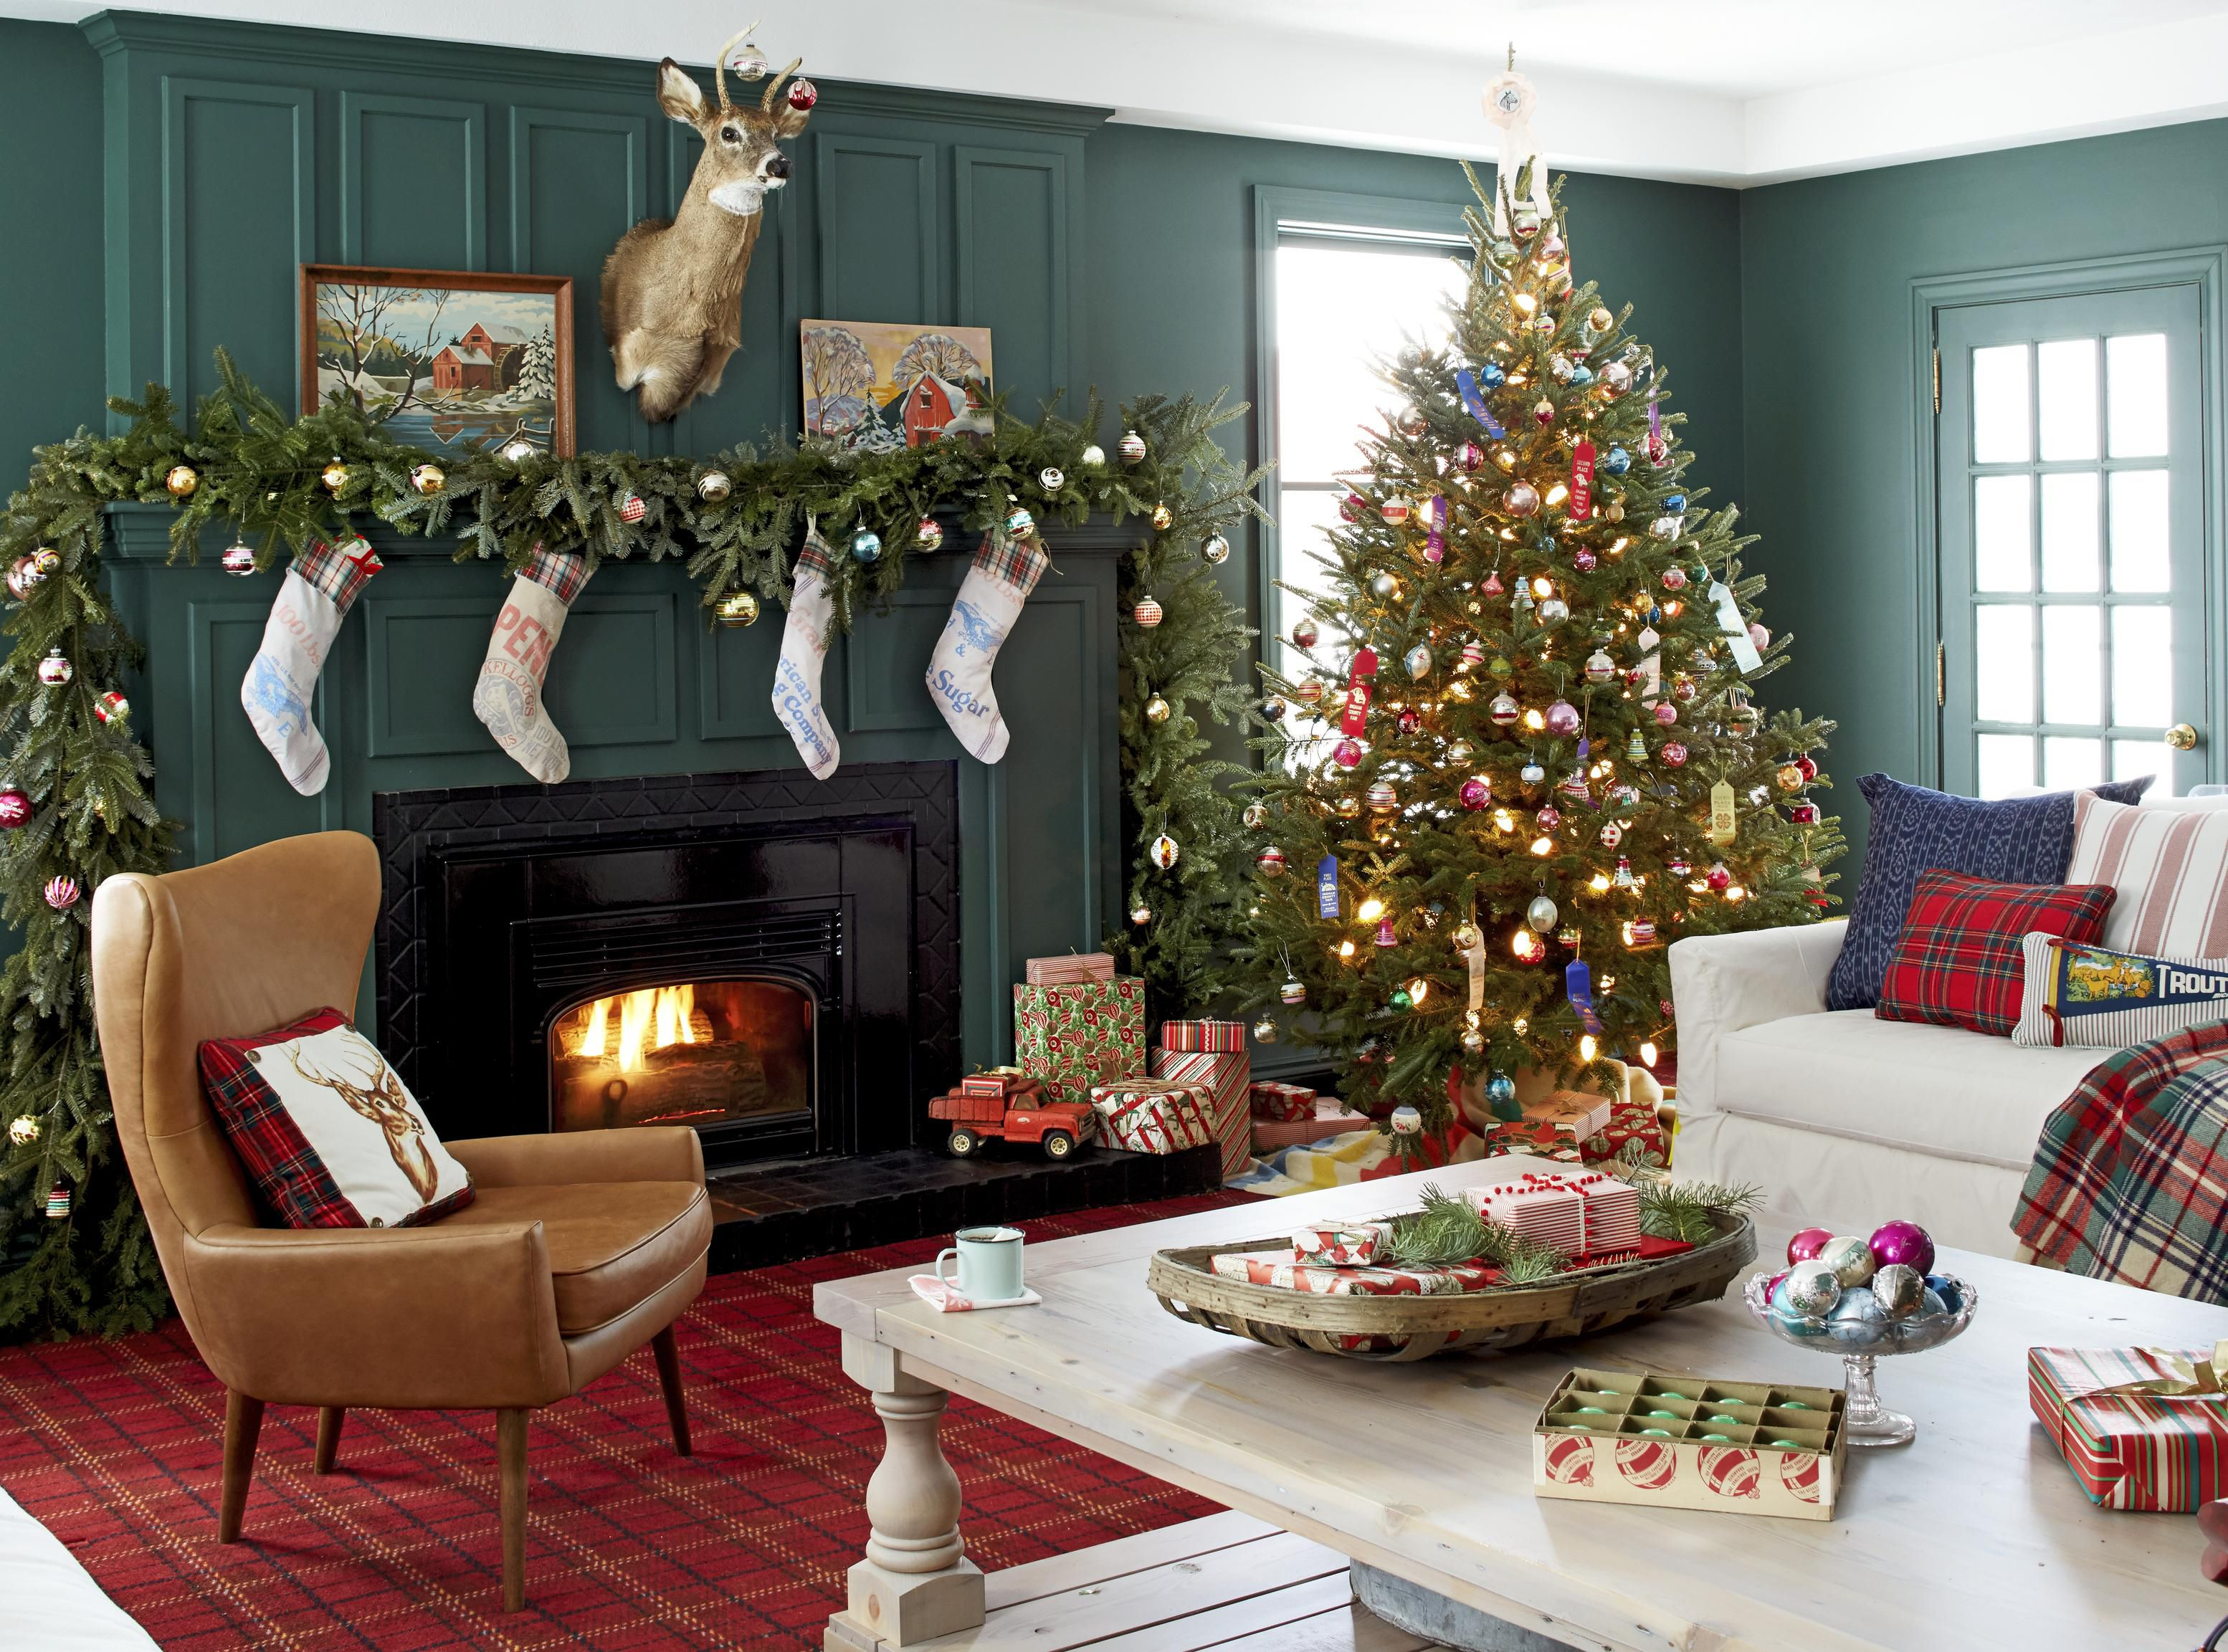 23 Christmas Living Room Decorating Ideas , How to Decorate